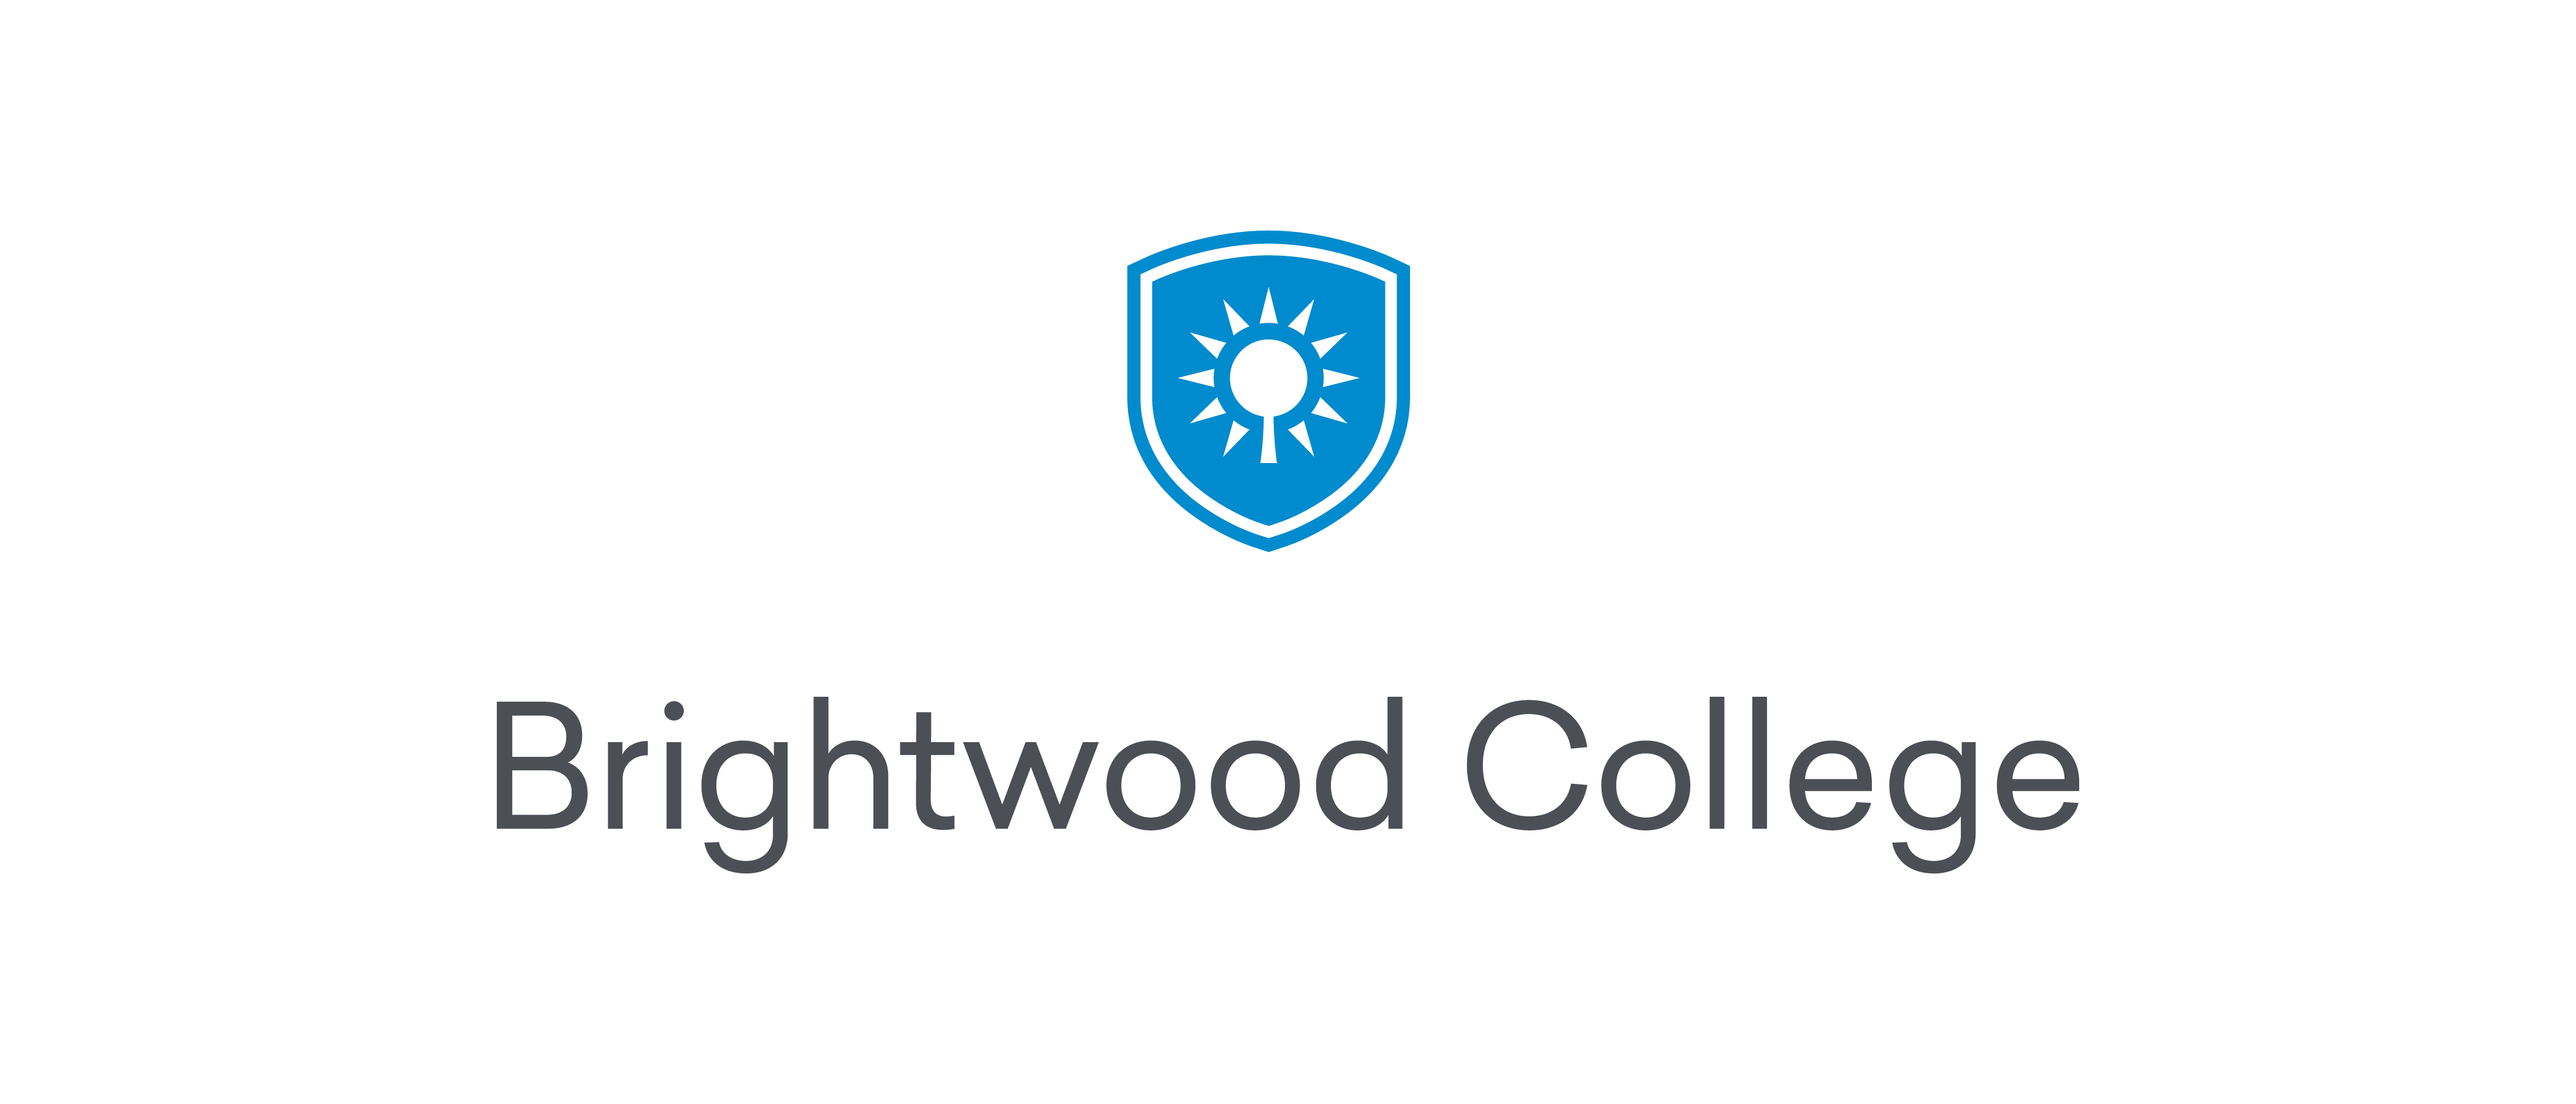 Brightwood College - Campus